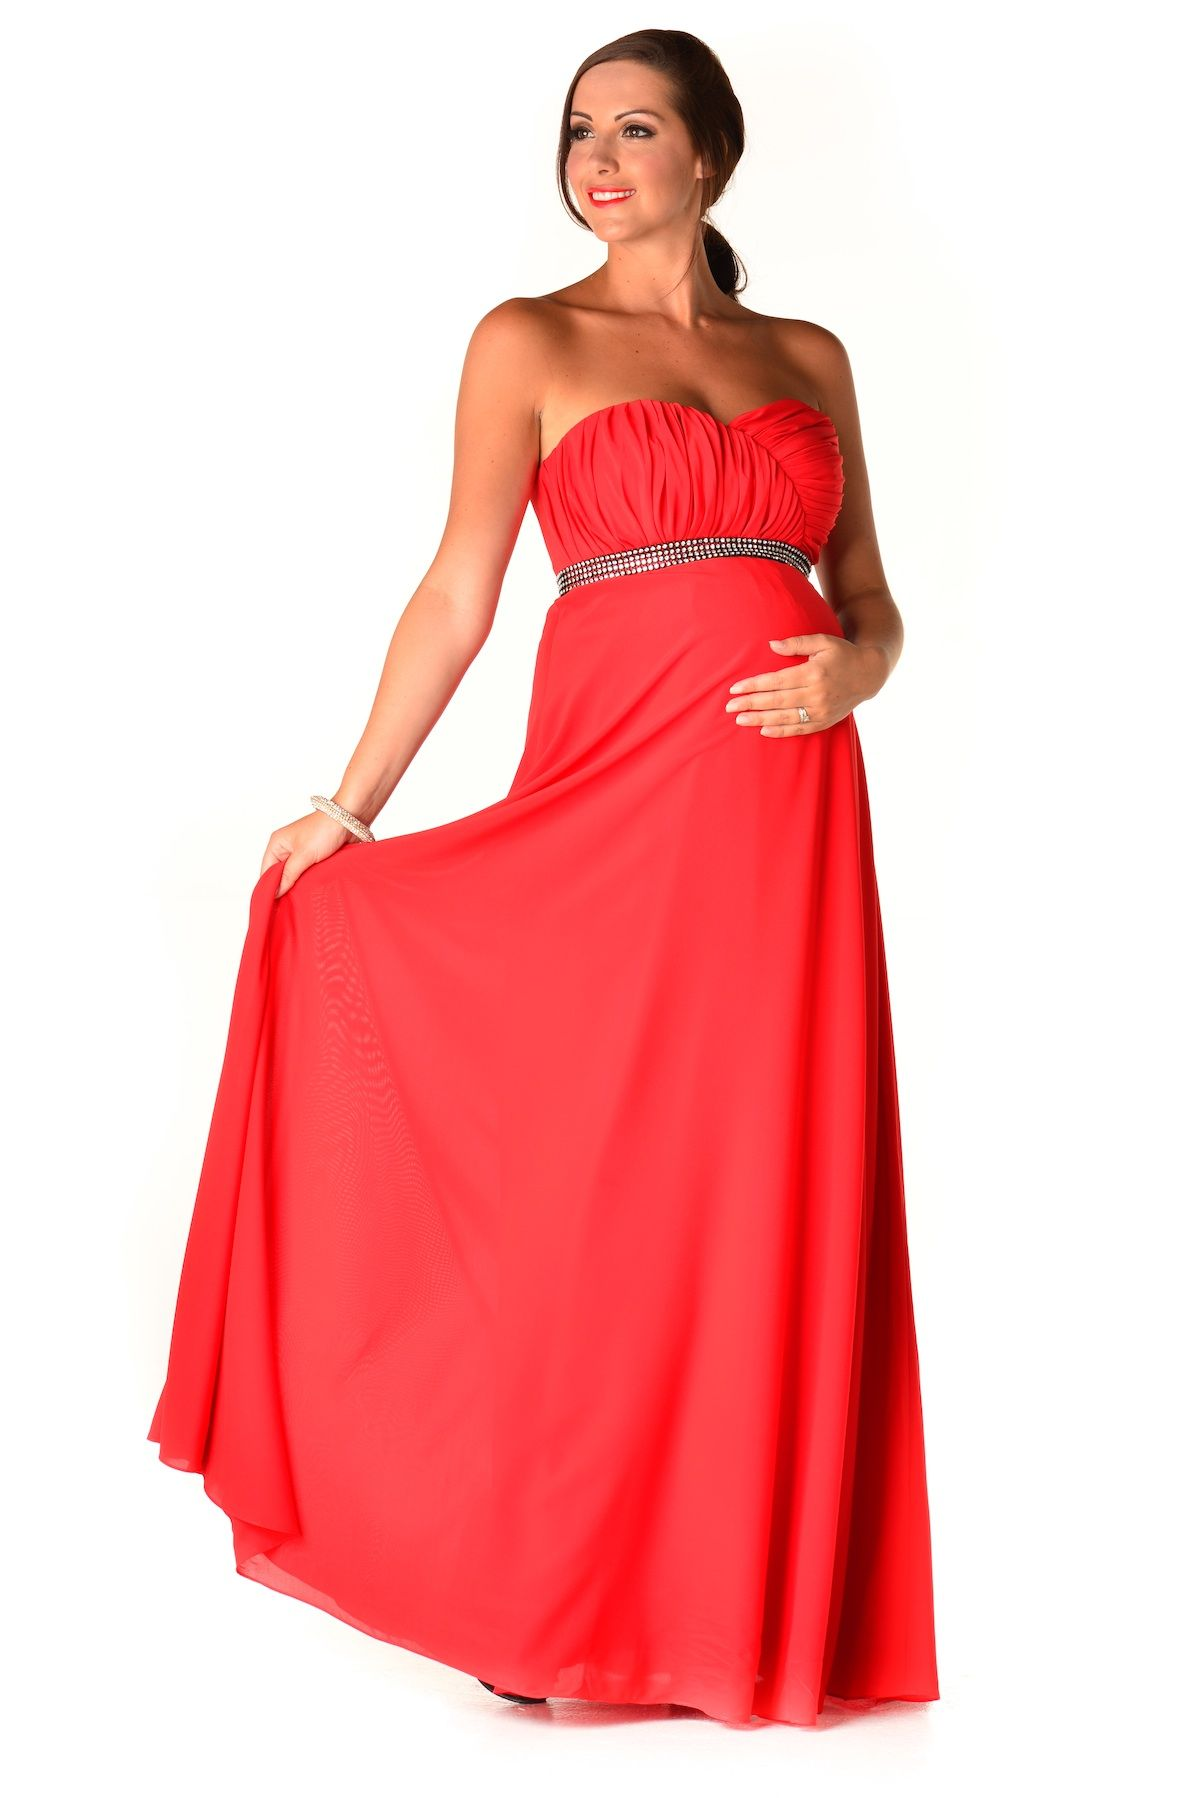 Red maternity evening dress images braidsmaid dress cocktail maternity bridesmaid dresses as the great dress maternity tallula red maternity evening dress just stunning ombrellifo ombrellifo Images